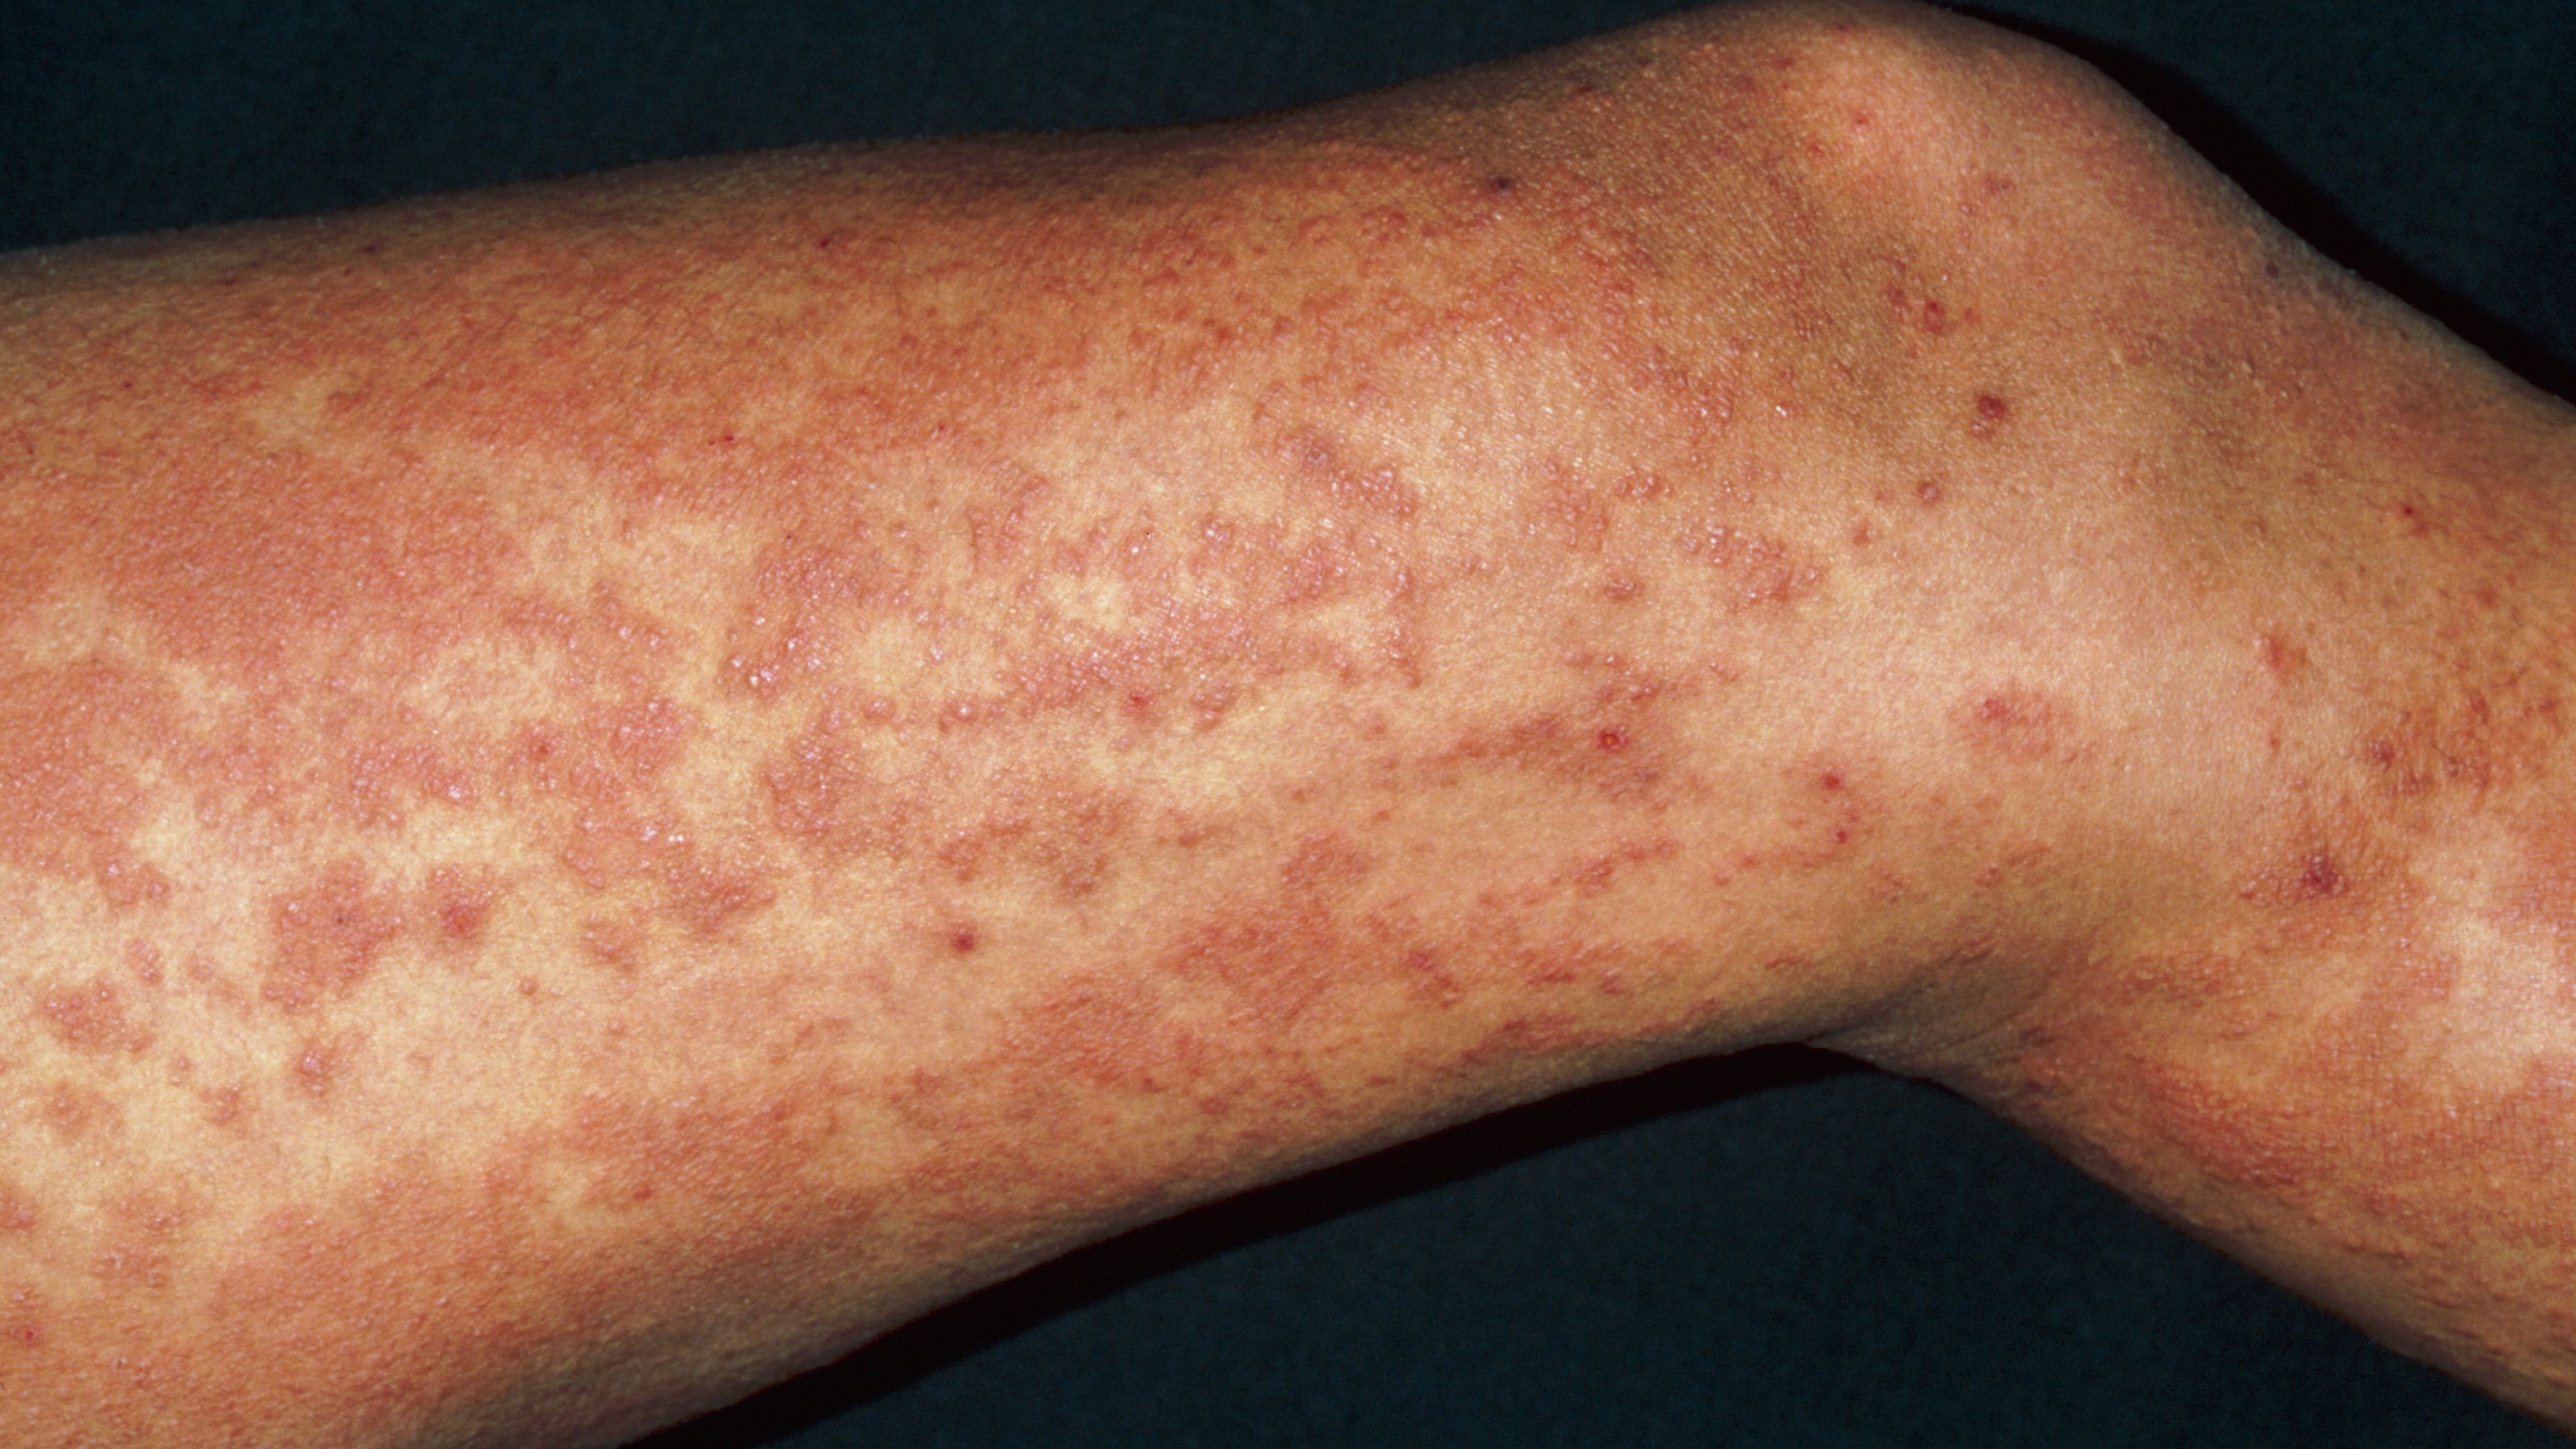 Overview of Hives or Urticaria